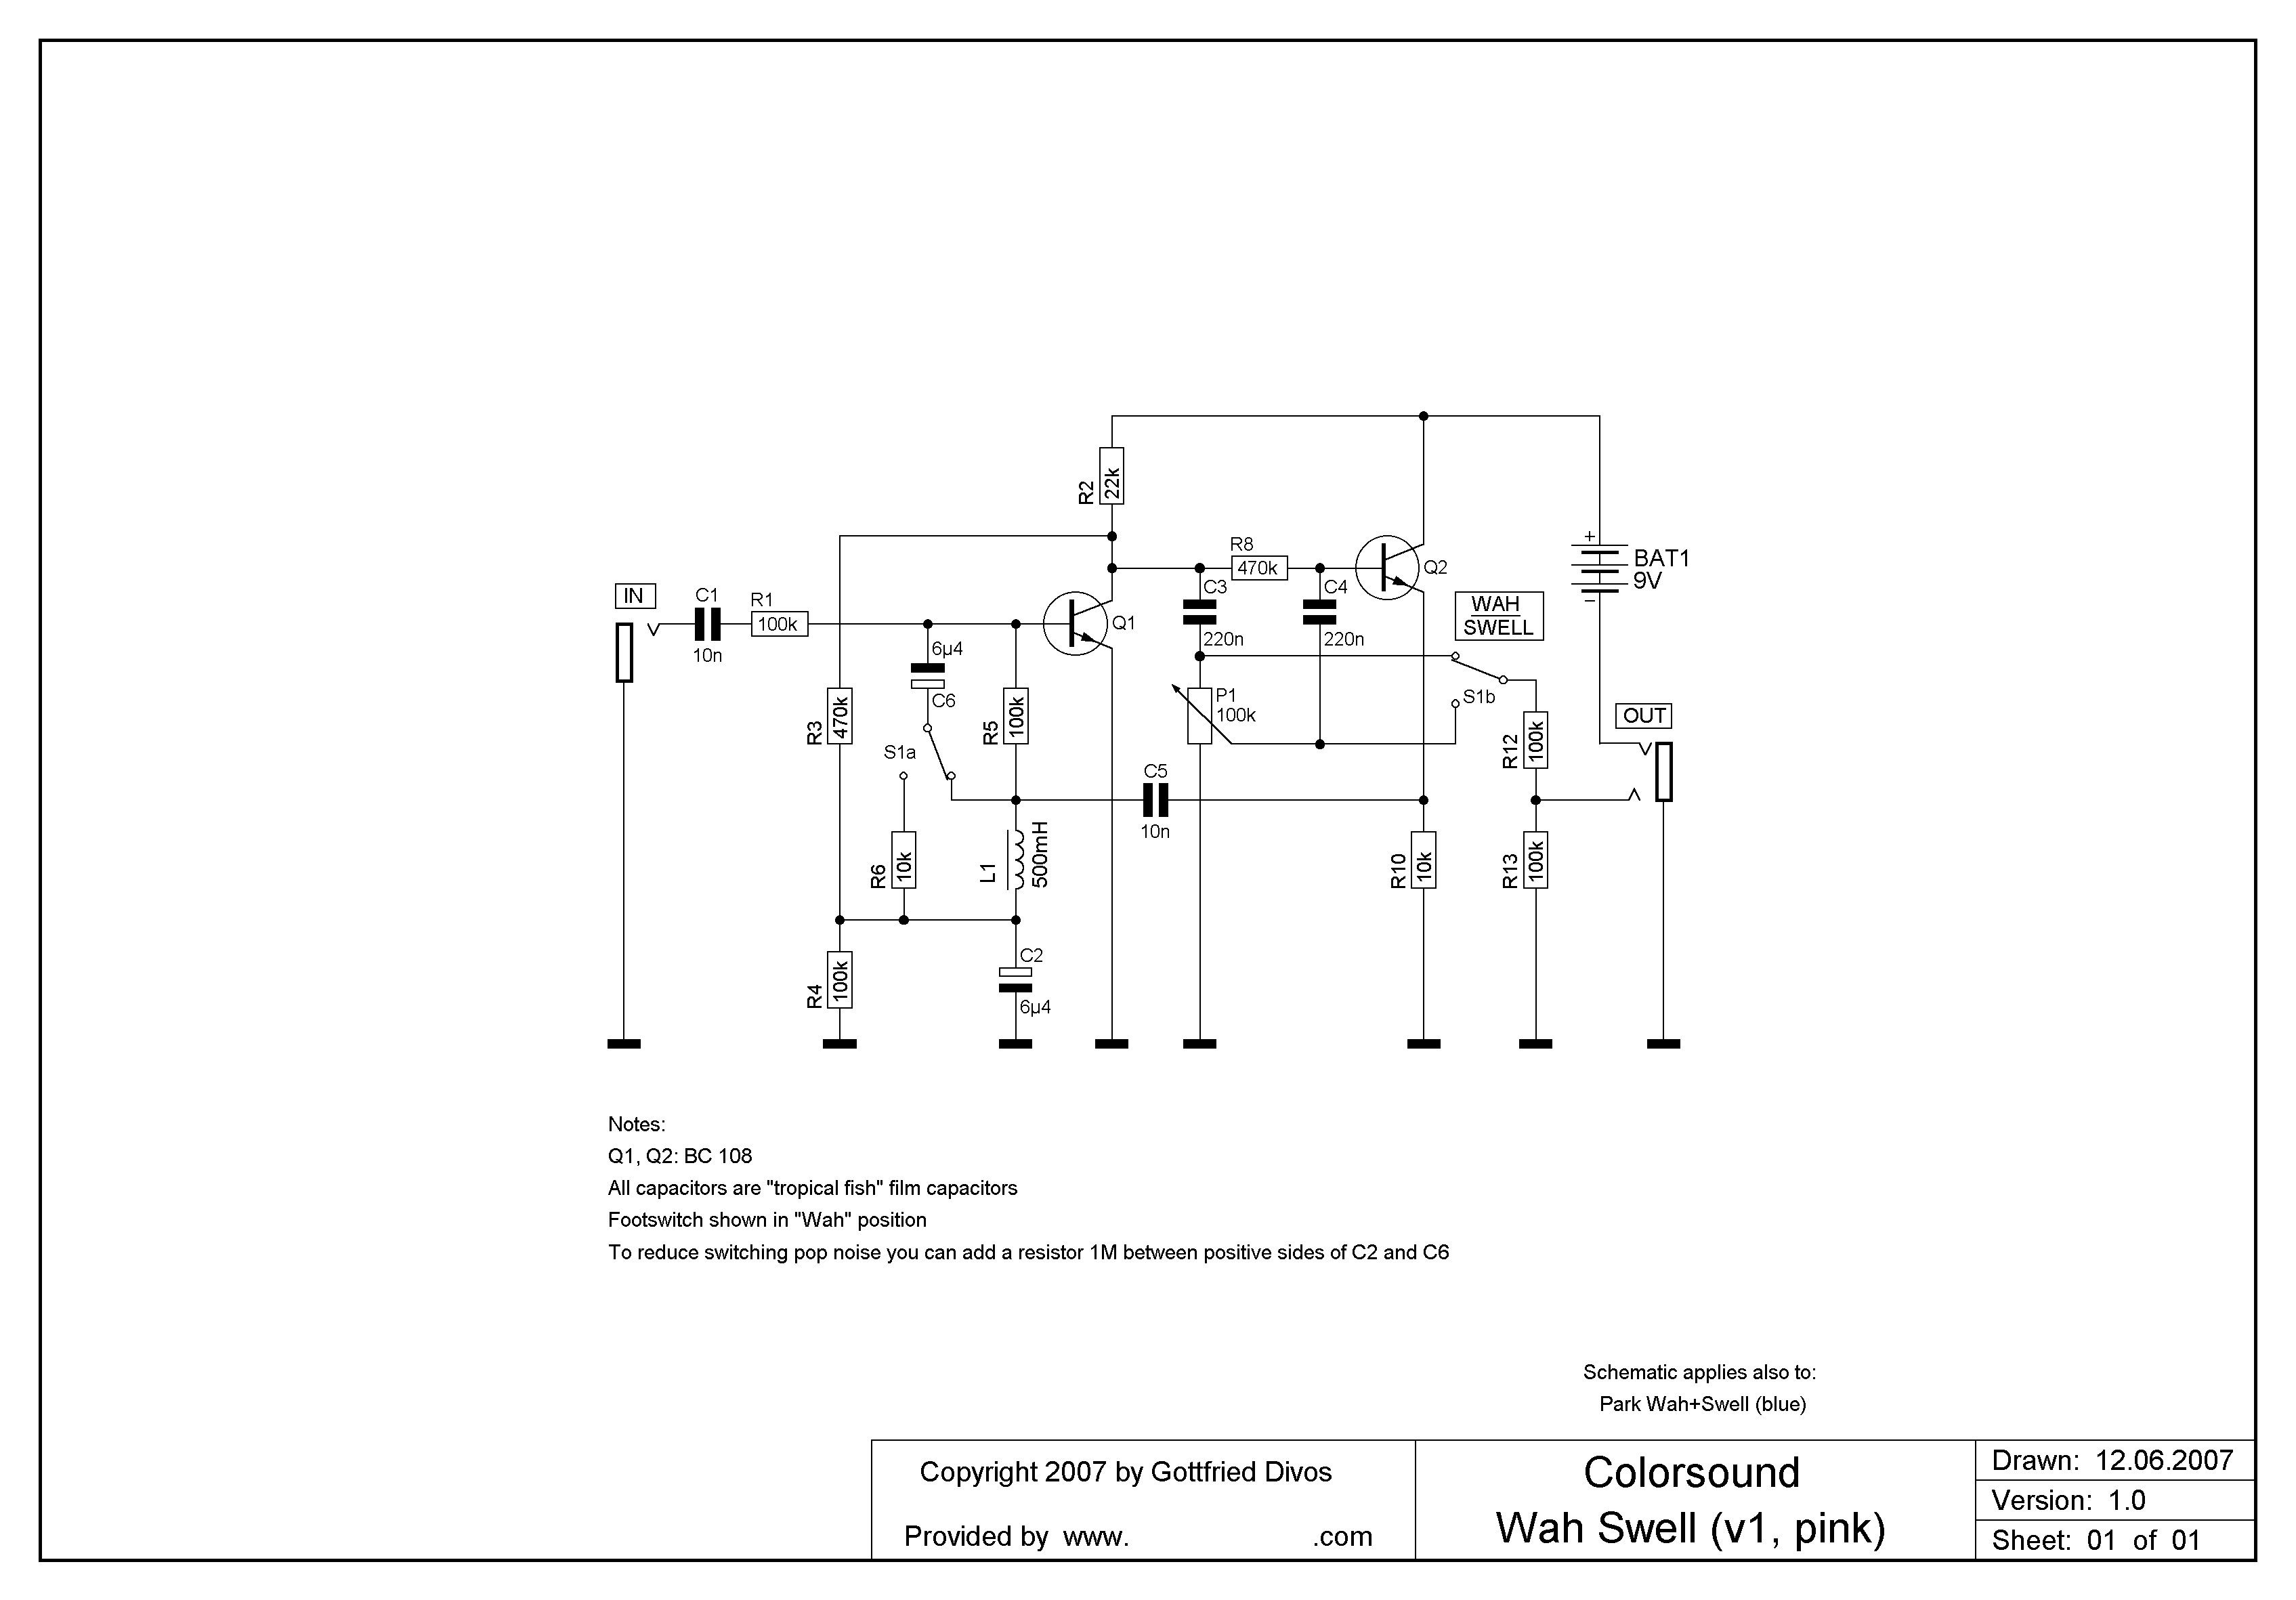 Fender S 1 Switching System Wiring Diagram In 2021 Diagram House Wiring System